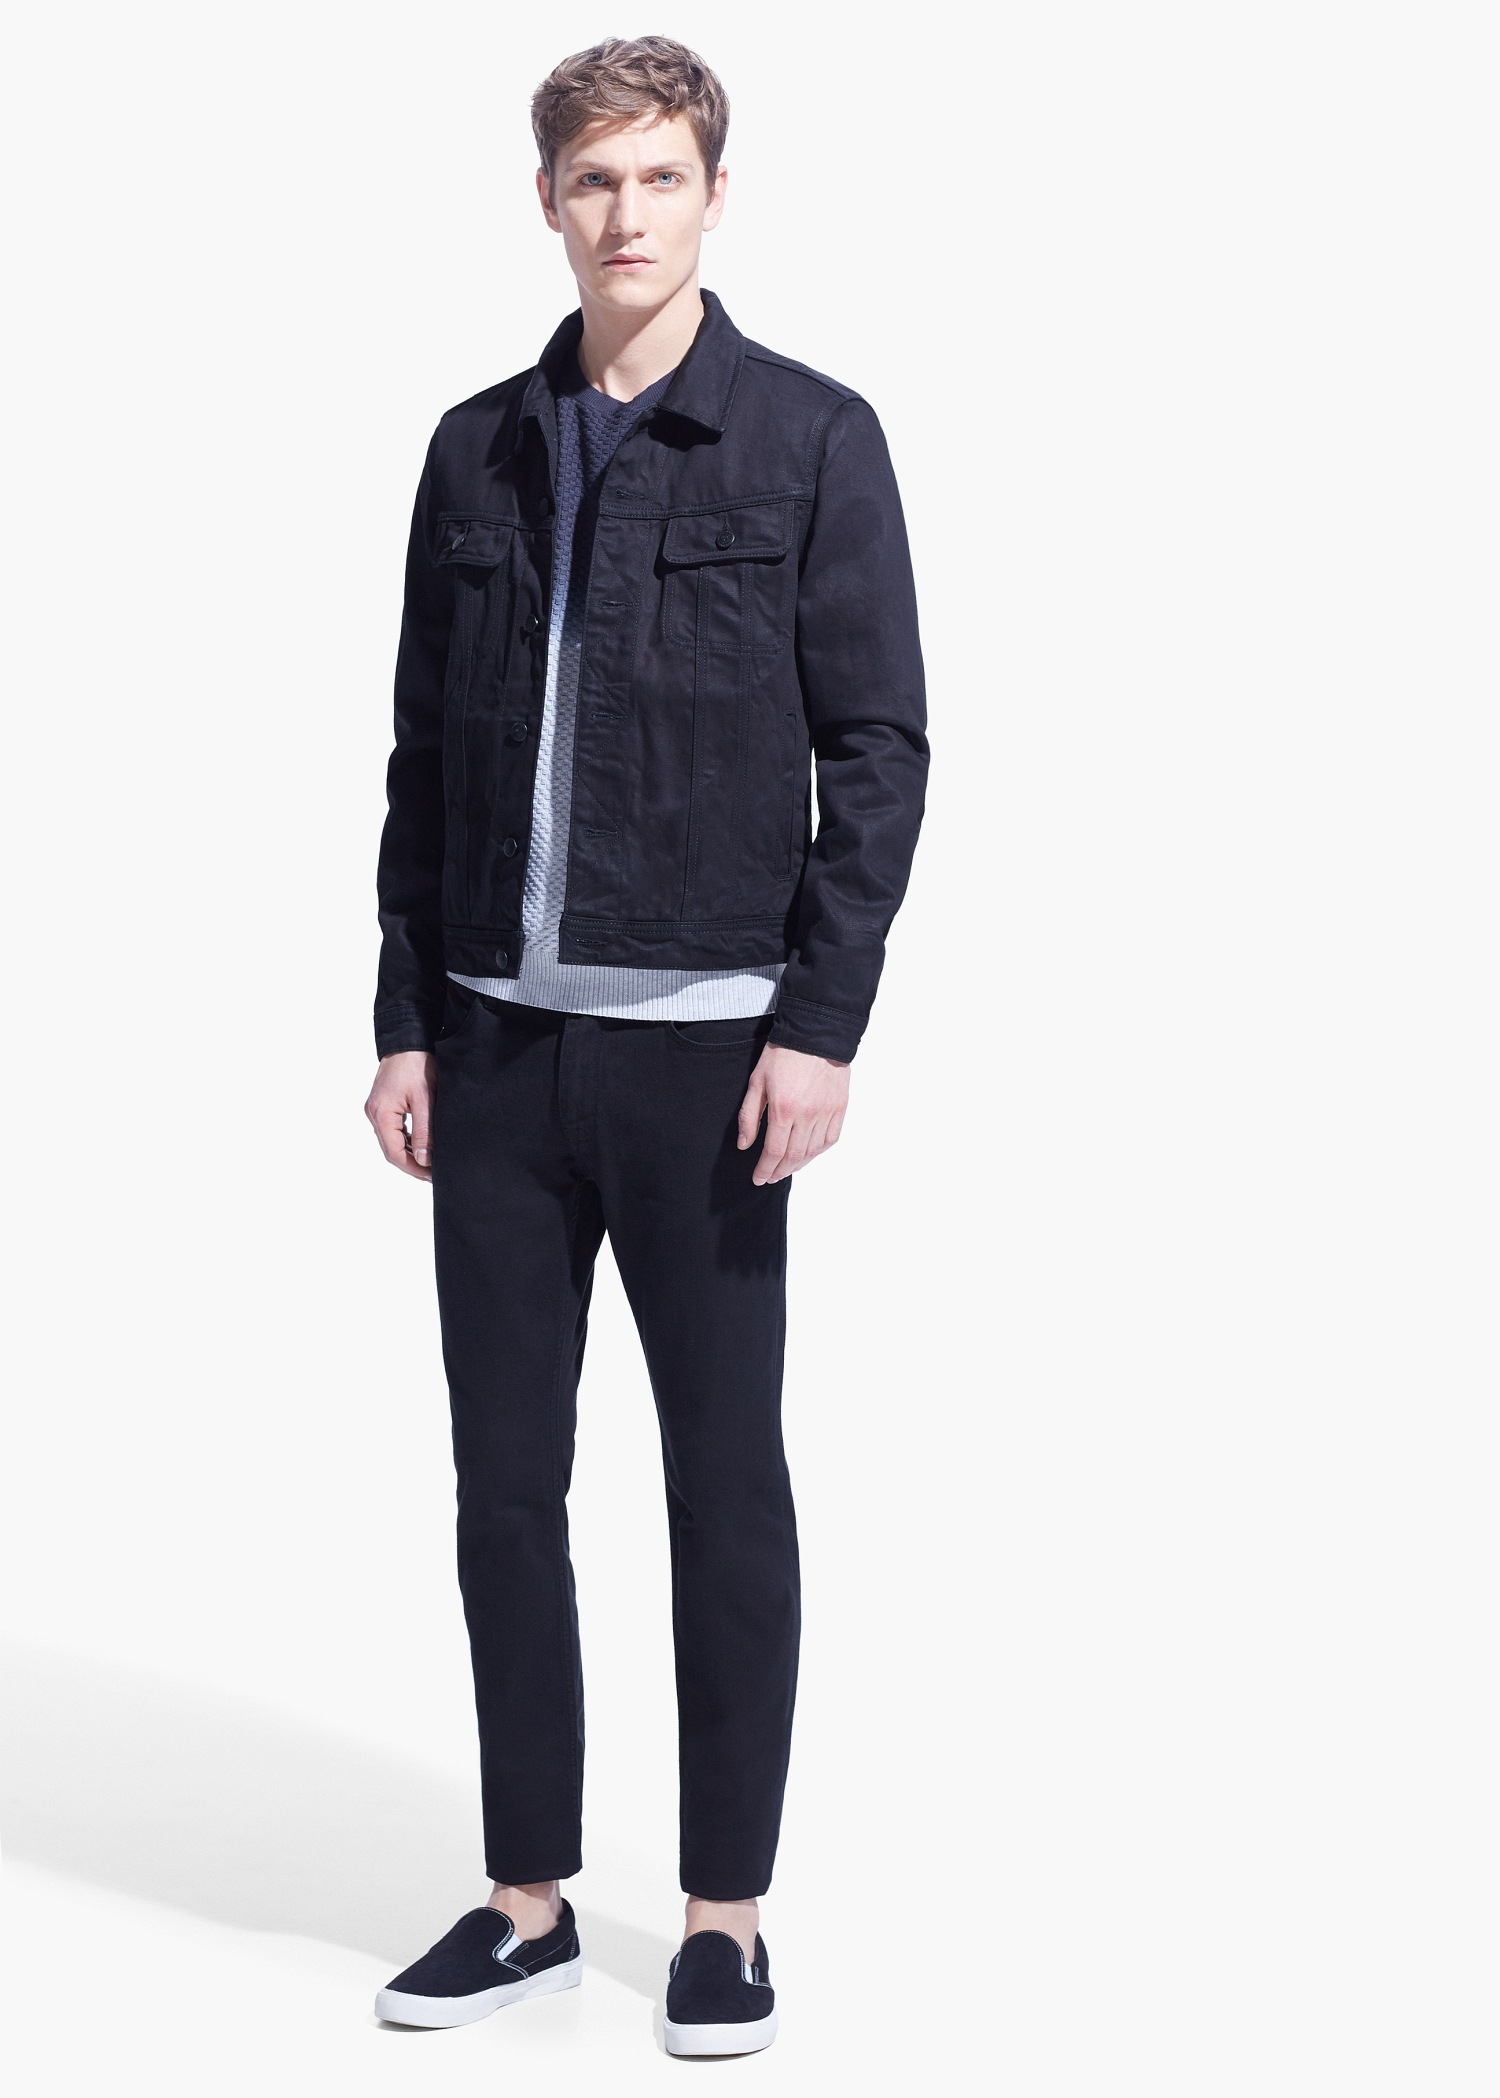 Mango Black Denim Jacket in Gray for Men | Lyst